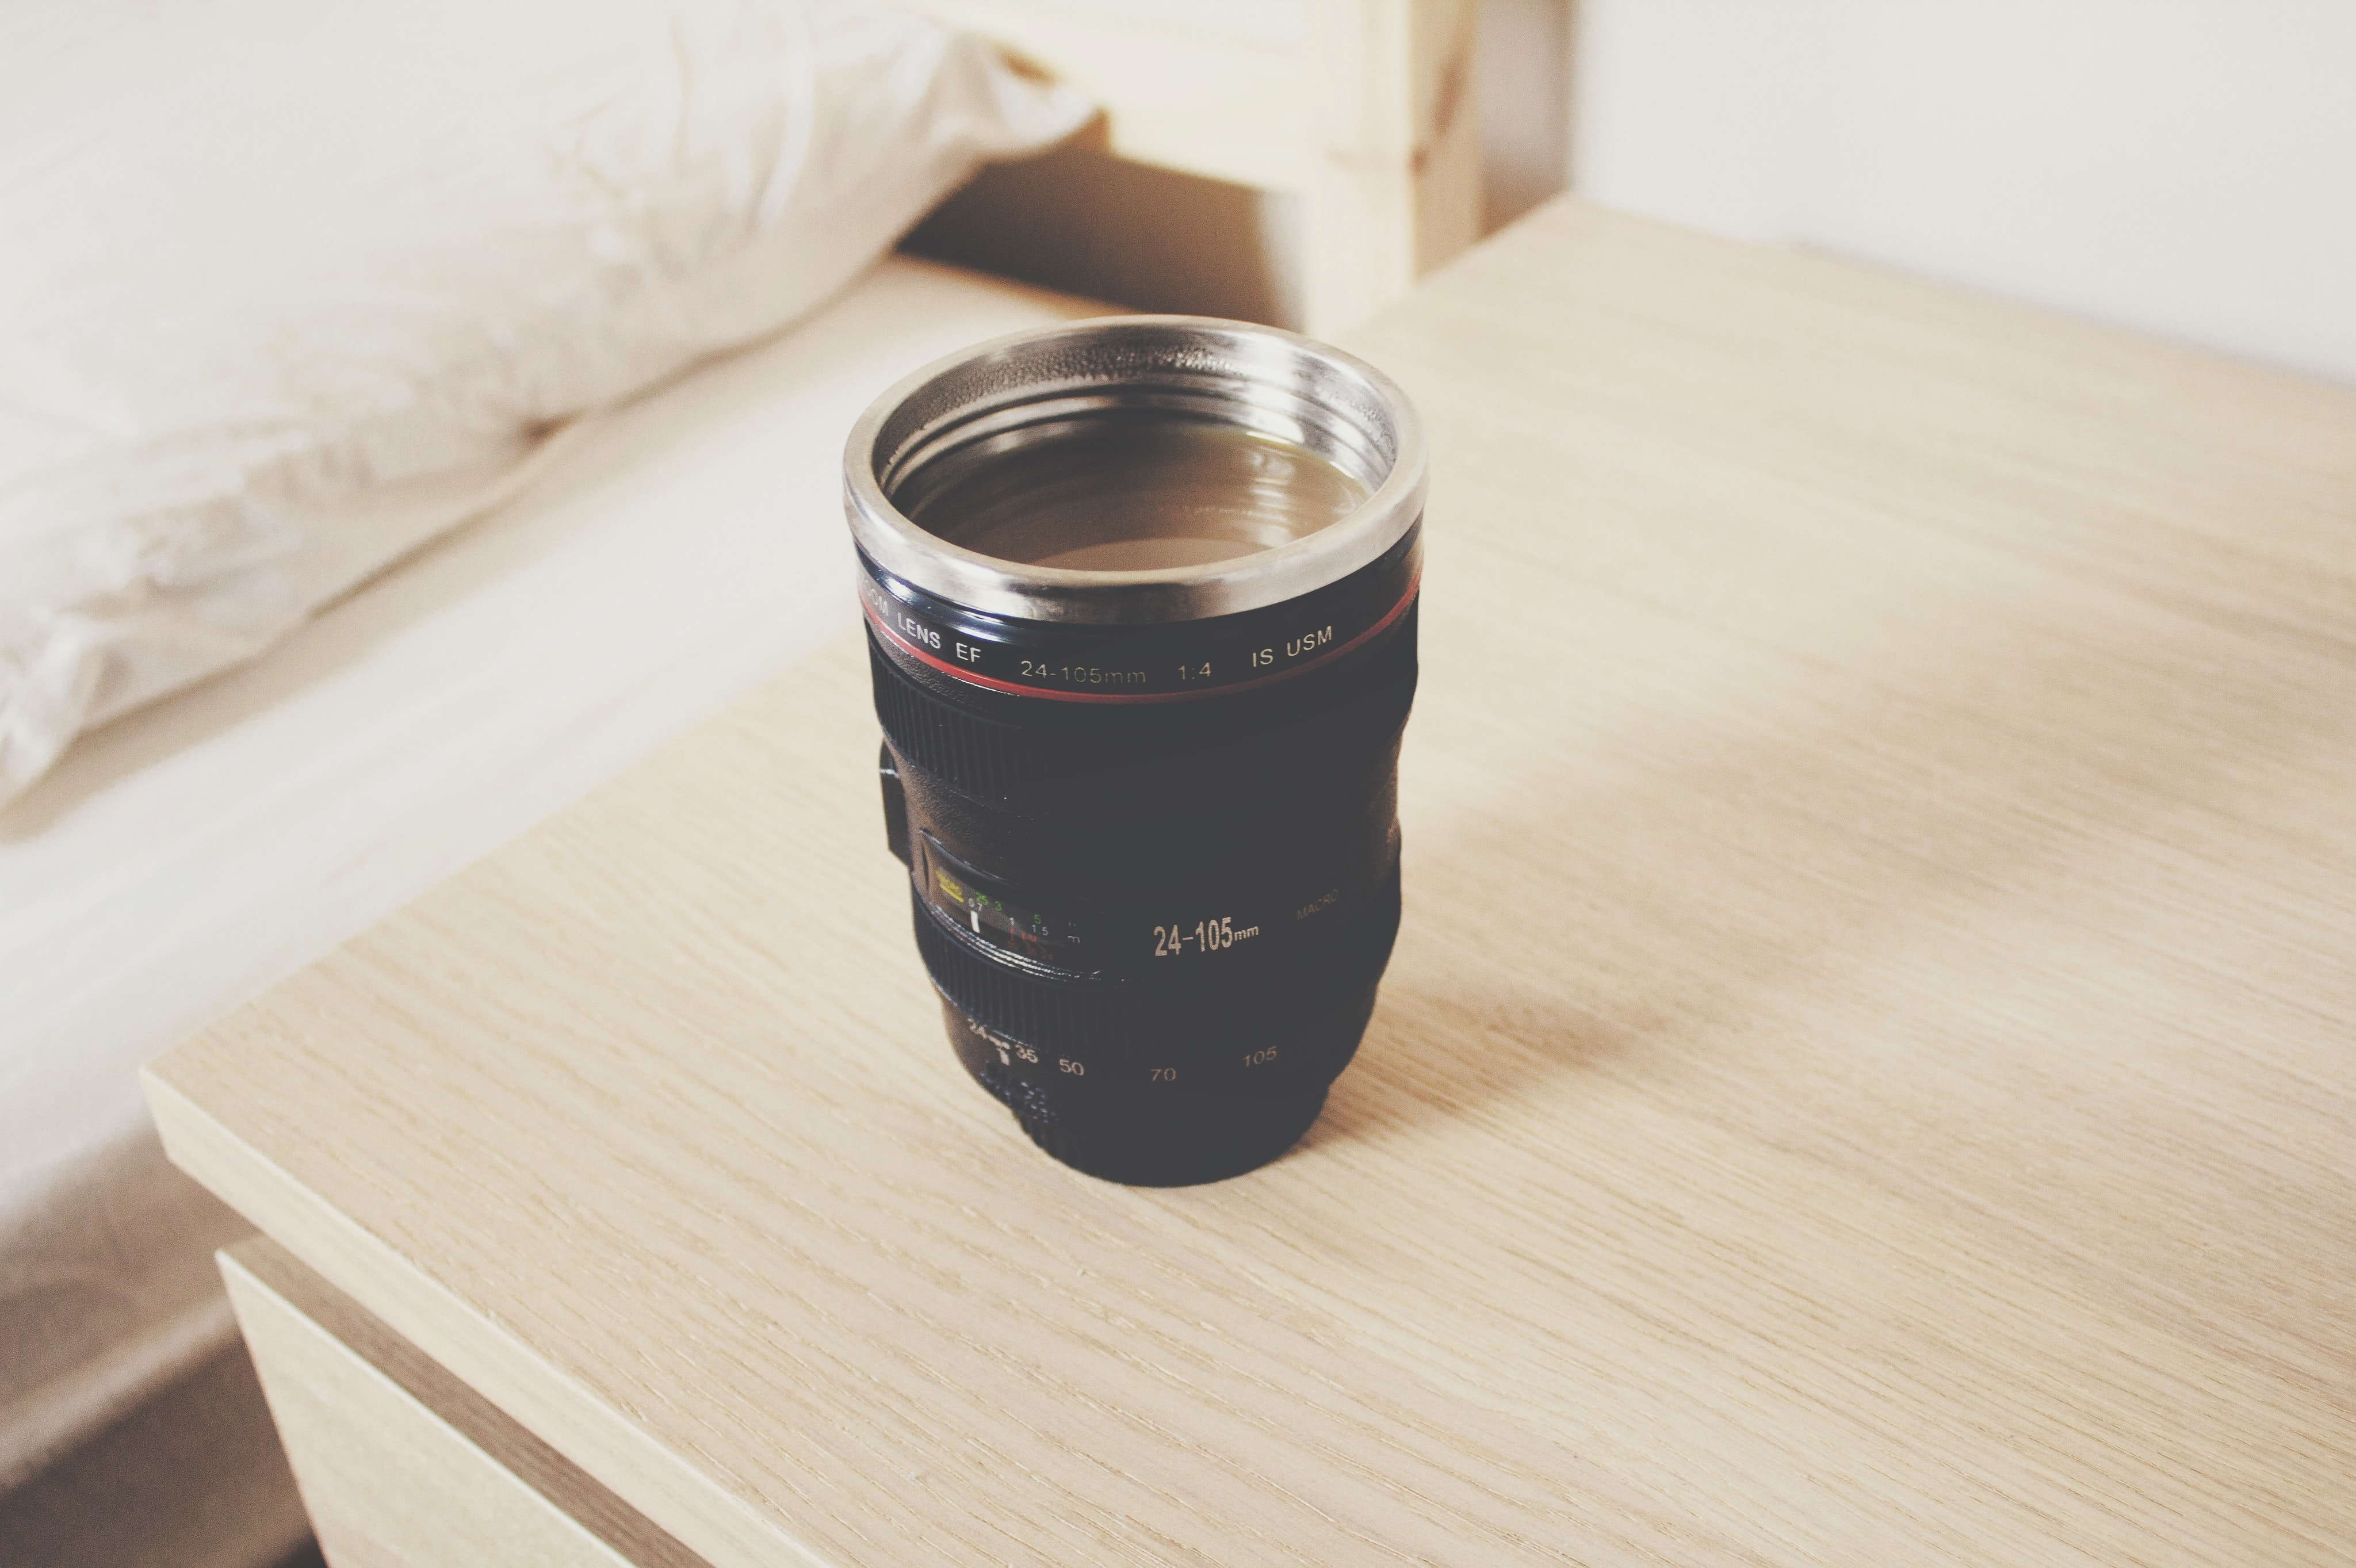 lens for iphone bedside table pictures free images on unsplash 12568